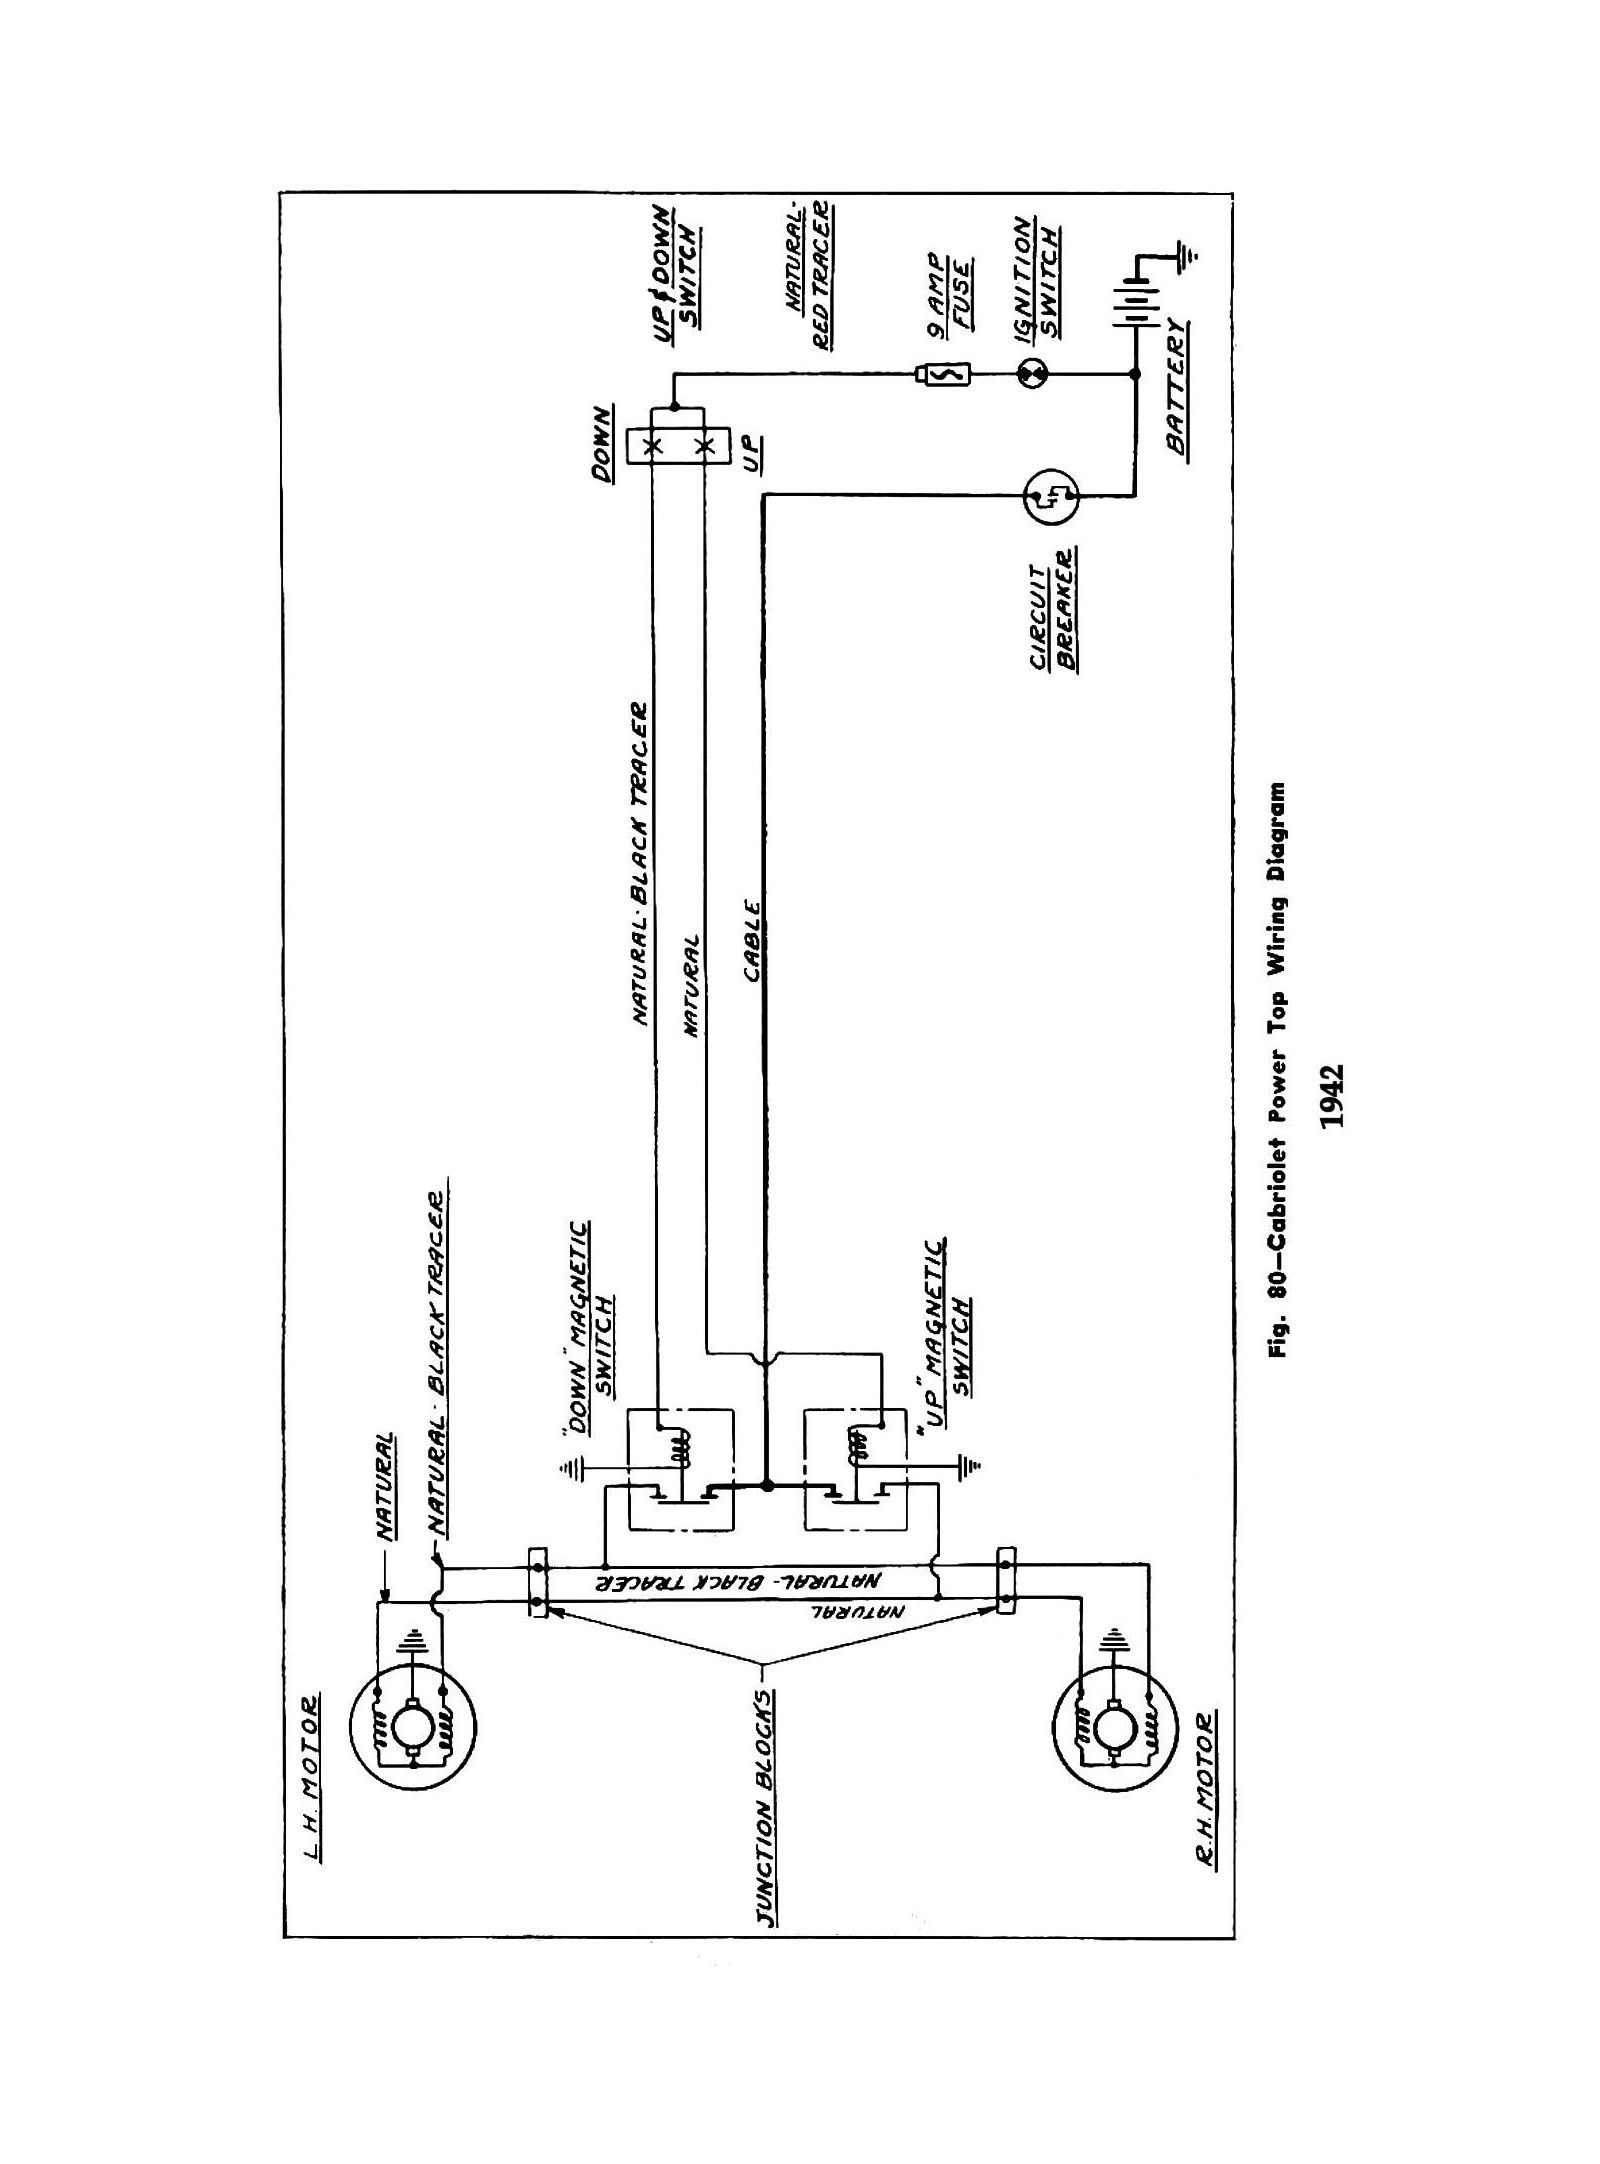 42 chevy truck wiring diagram schematic